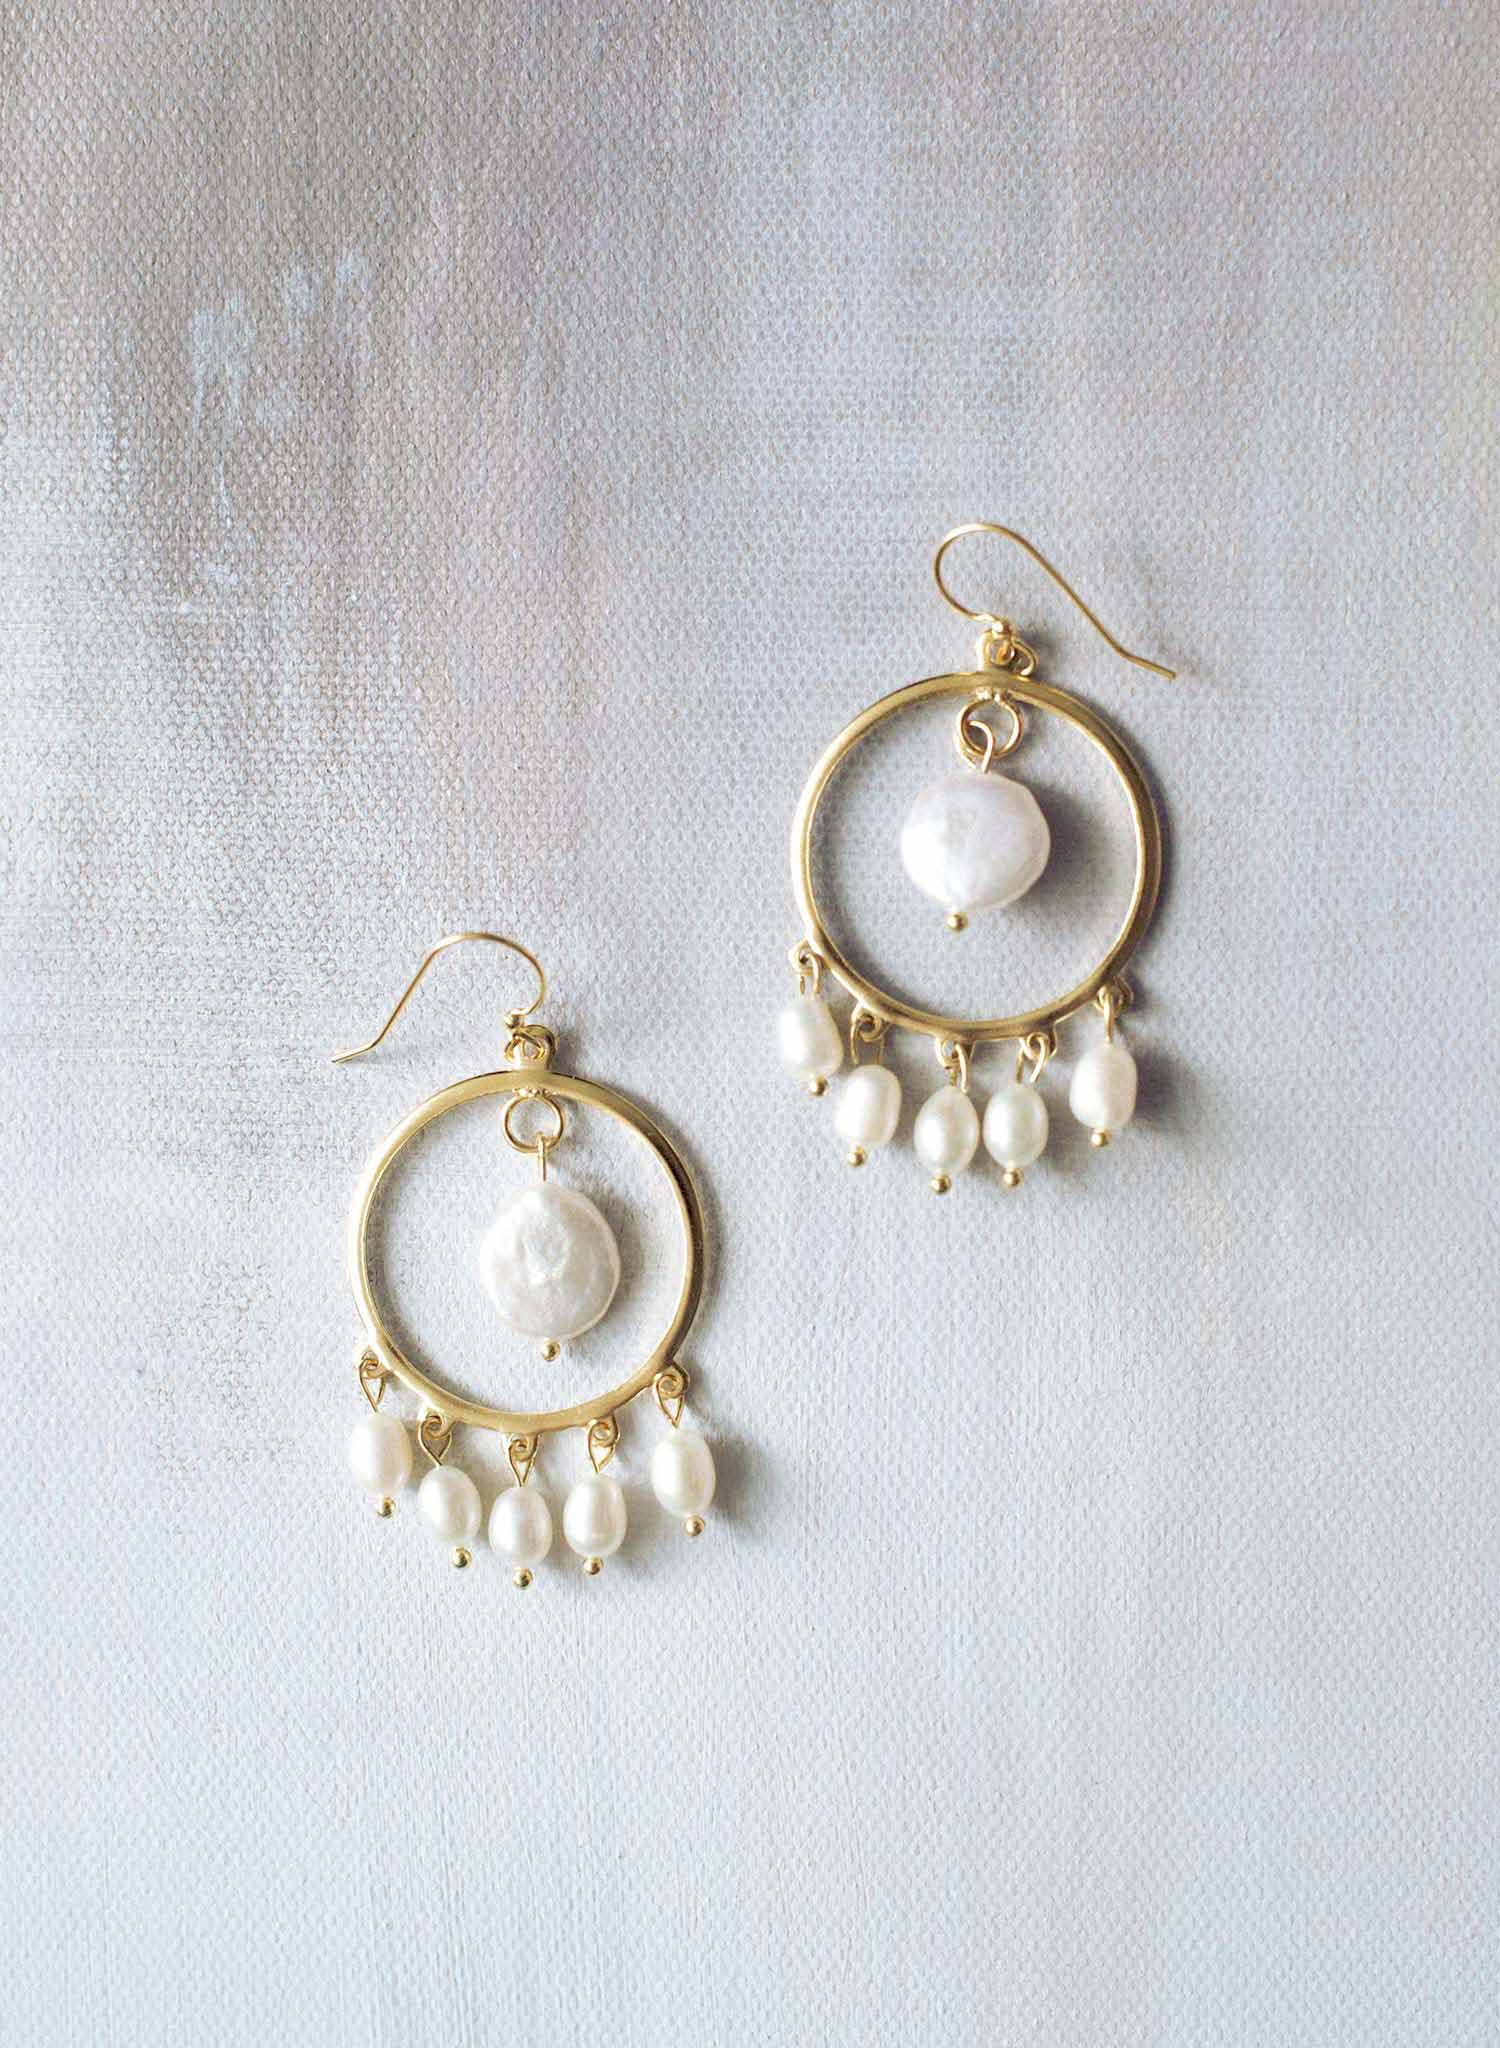 Festive pearl circle earrings - Style #9023